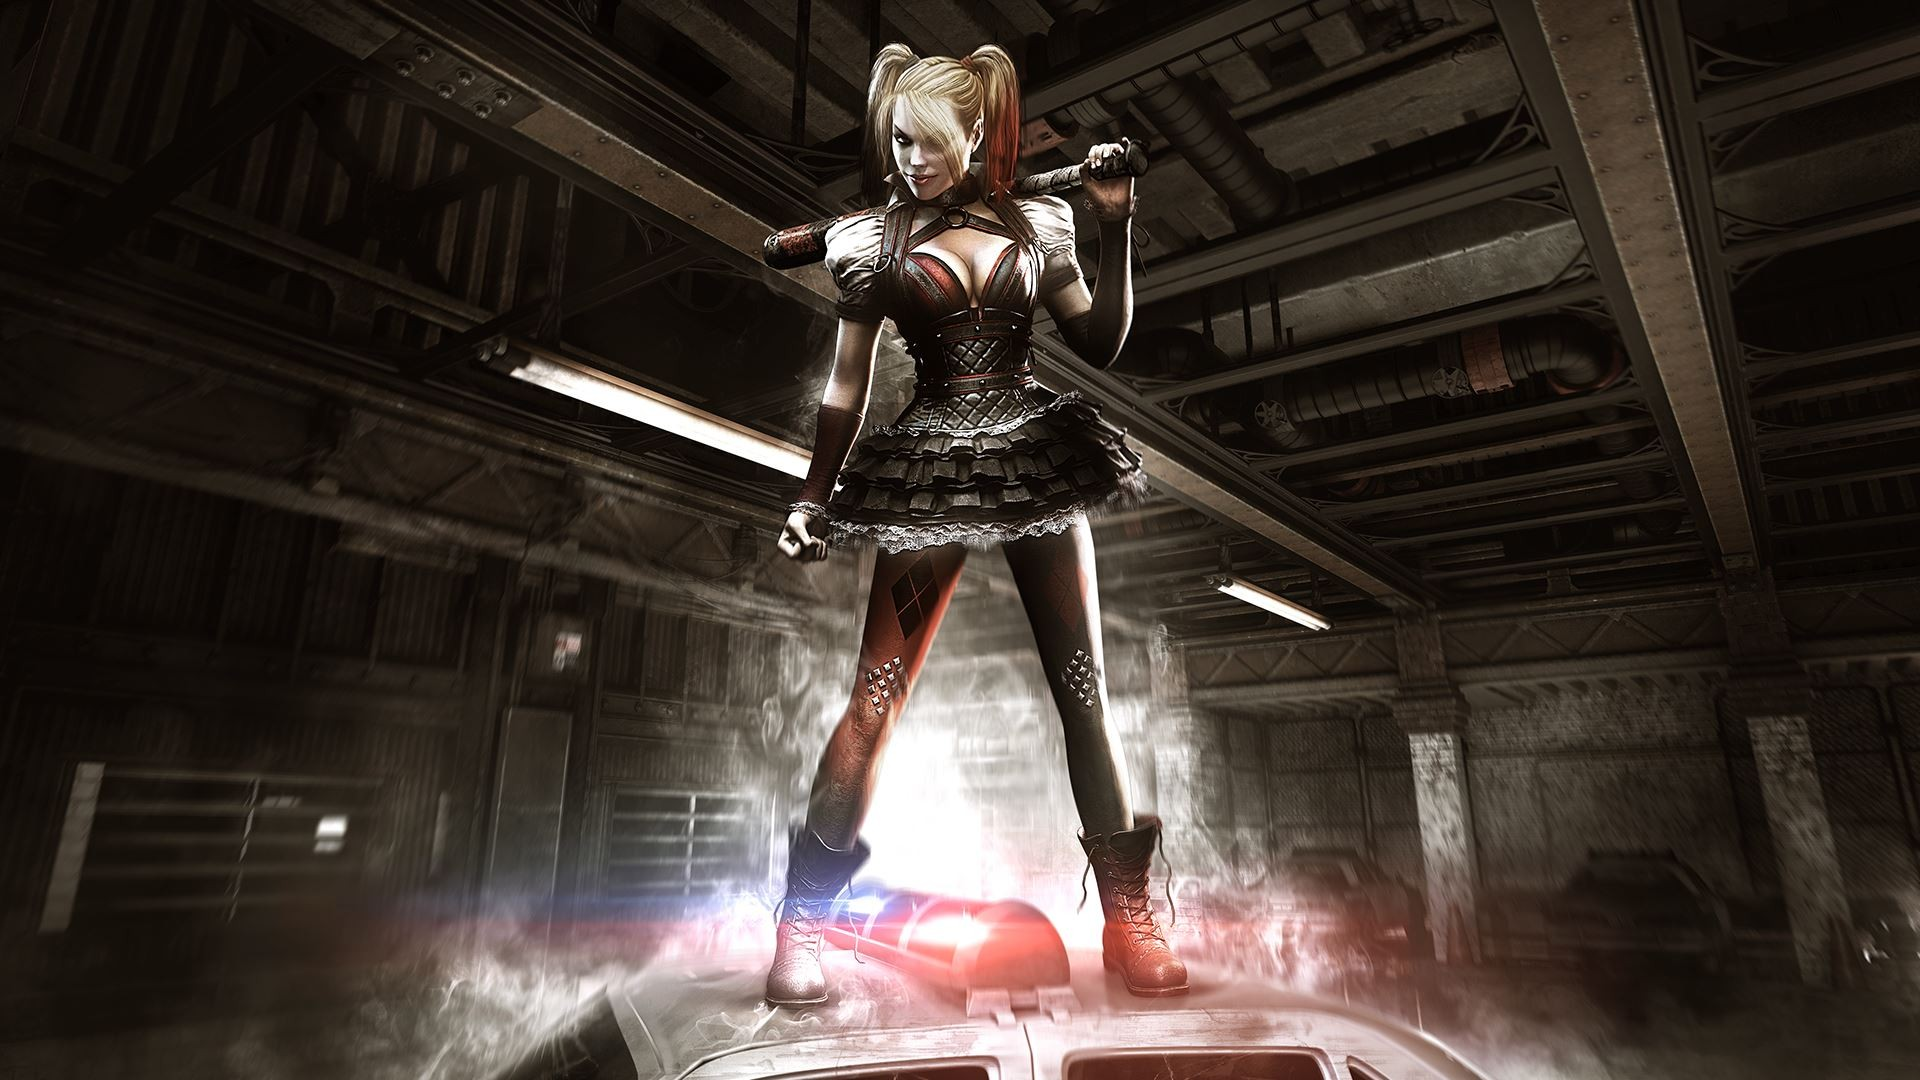 Harley Quinn Batman Arkham Knight HD Wallpaper Search more Games high 1920x1080